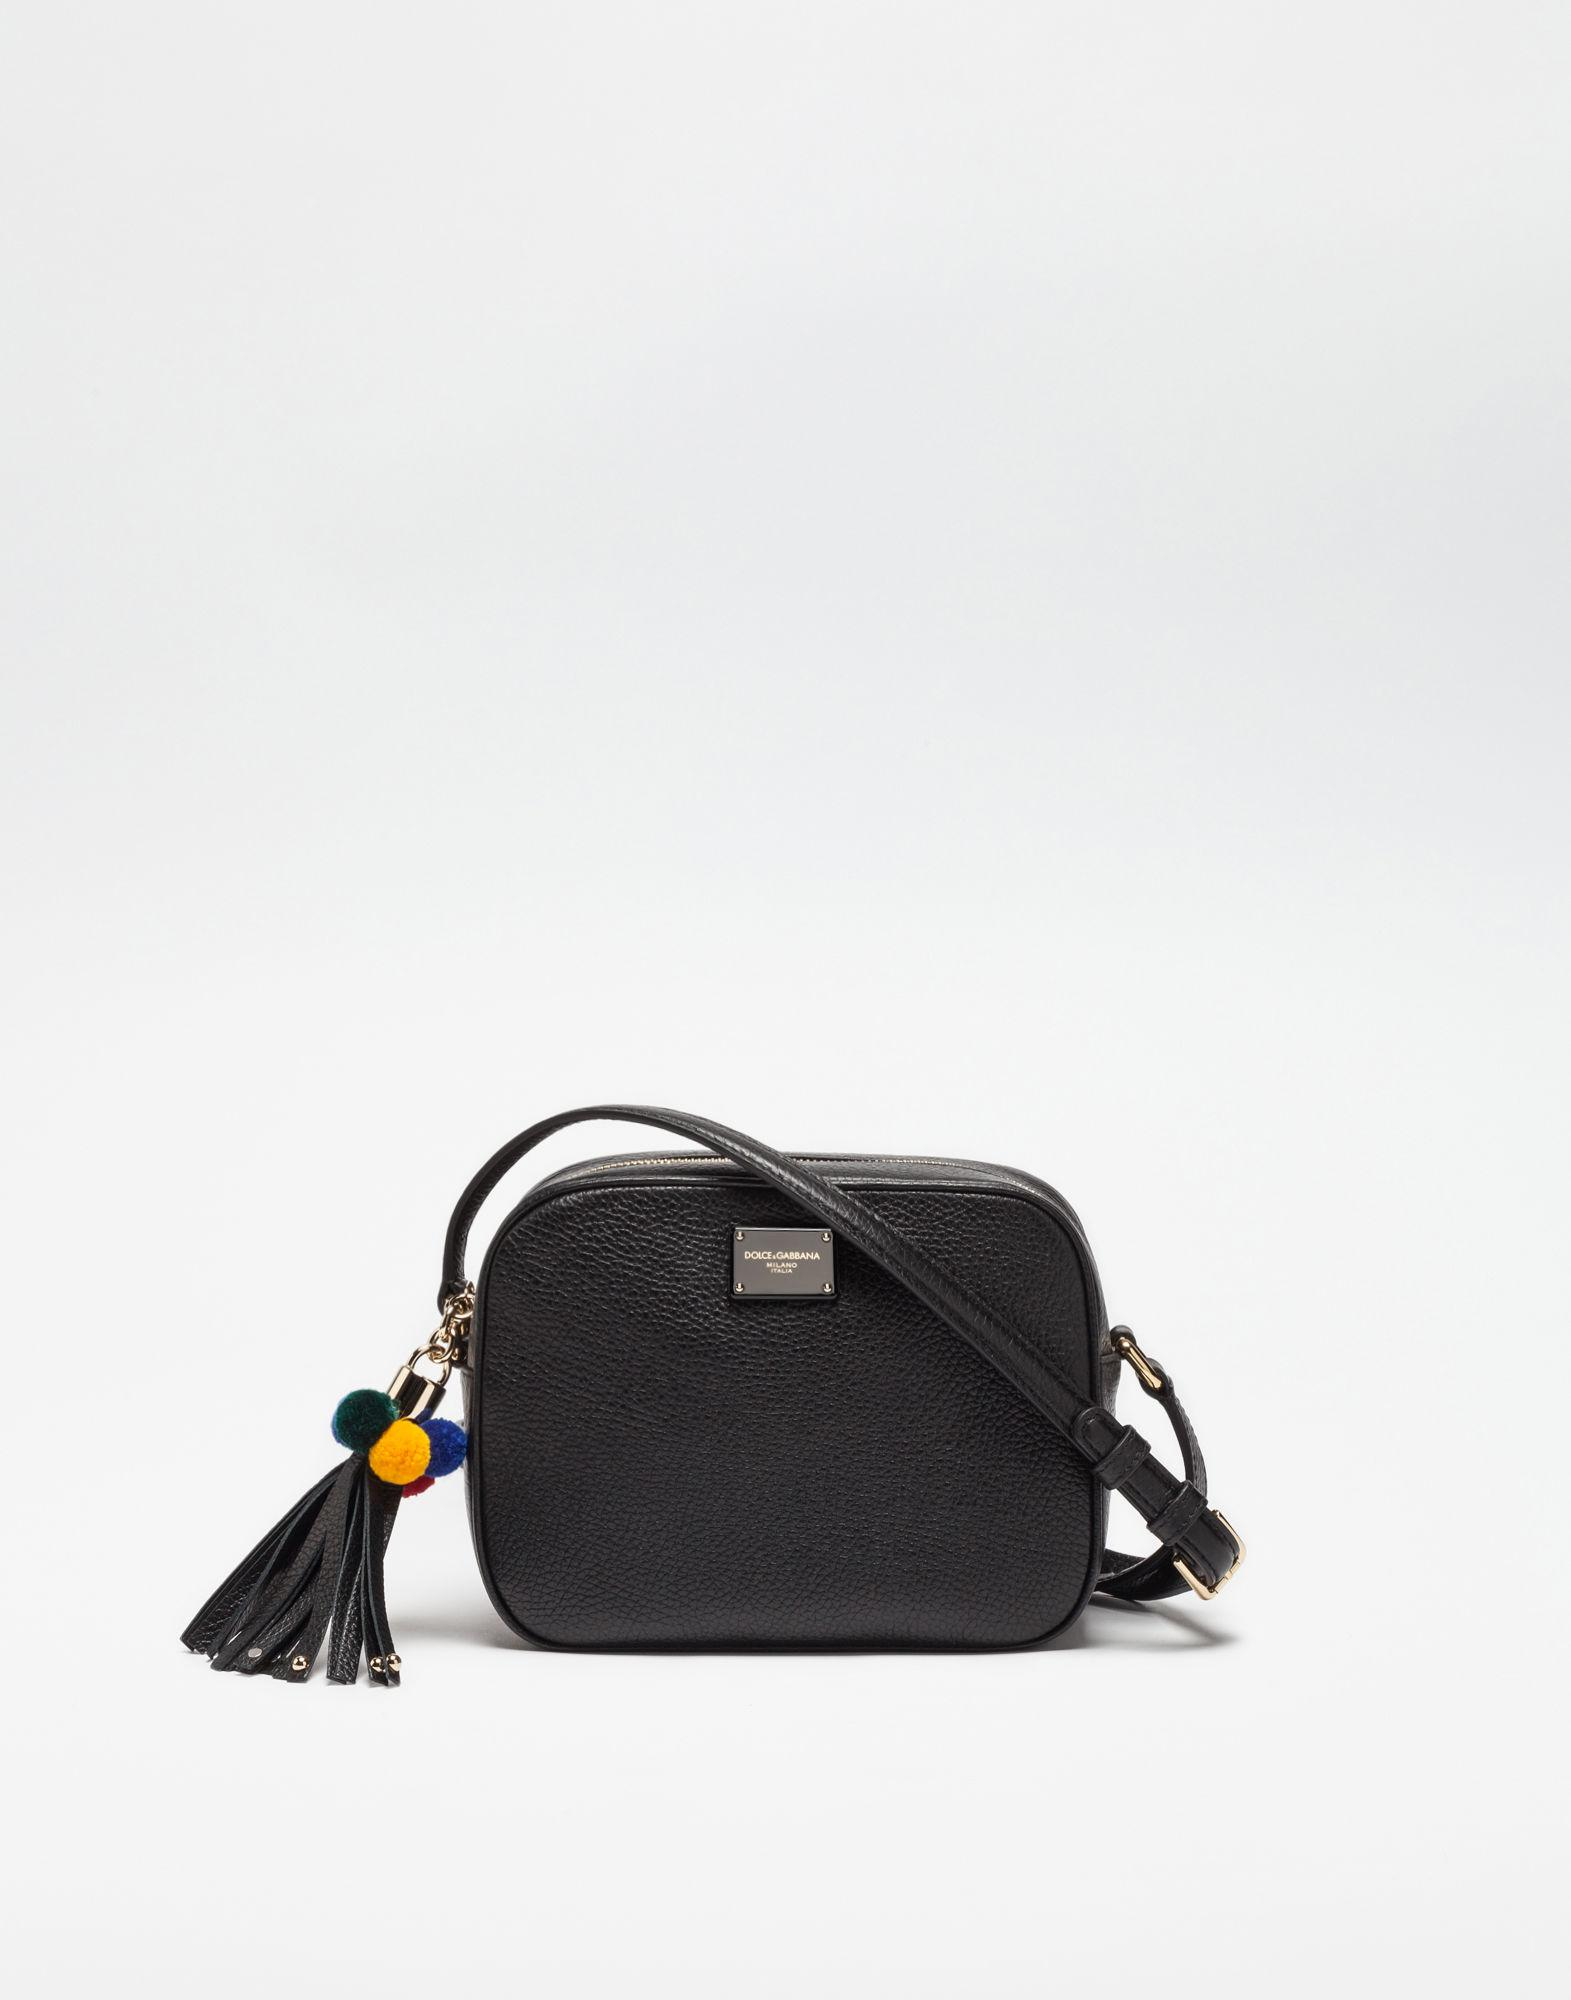 Glam shoulder bag - Black Dolce & Gabbana 9J2UKmk3WL